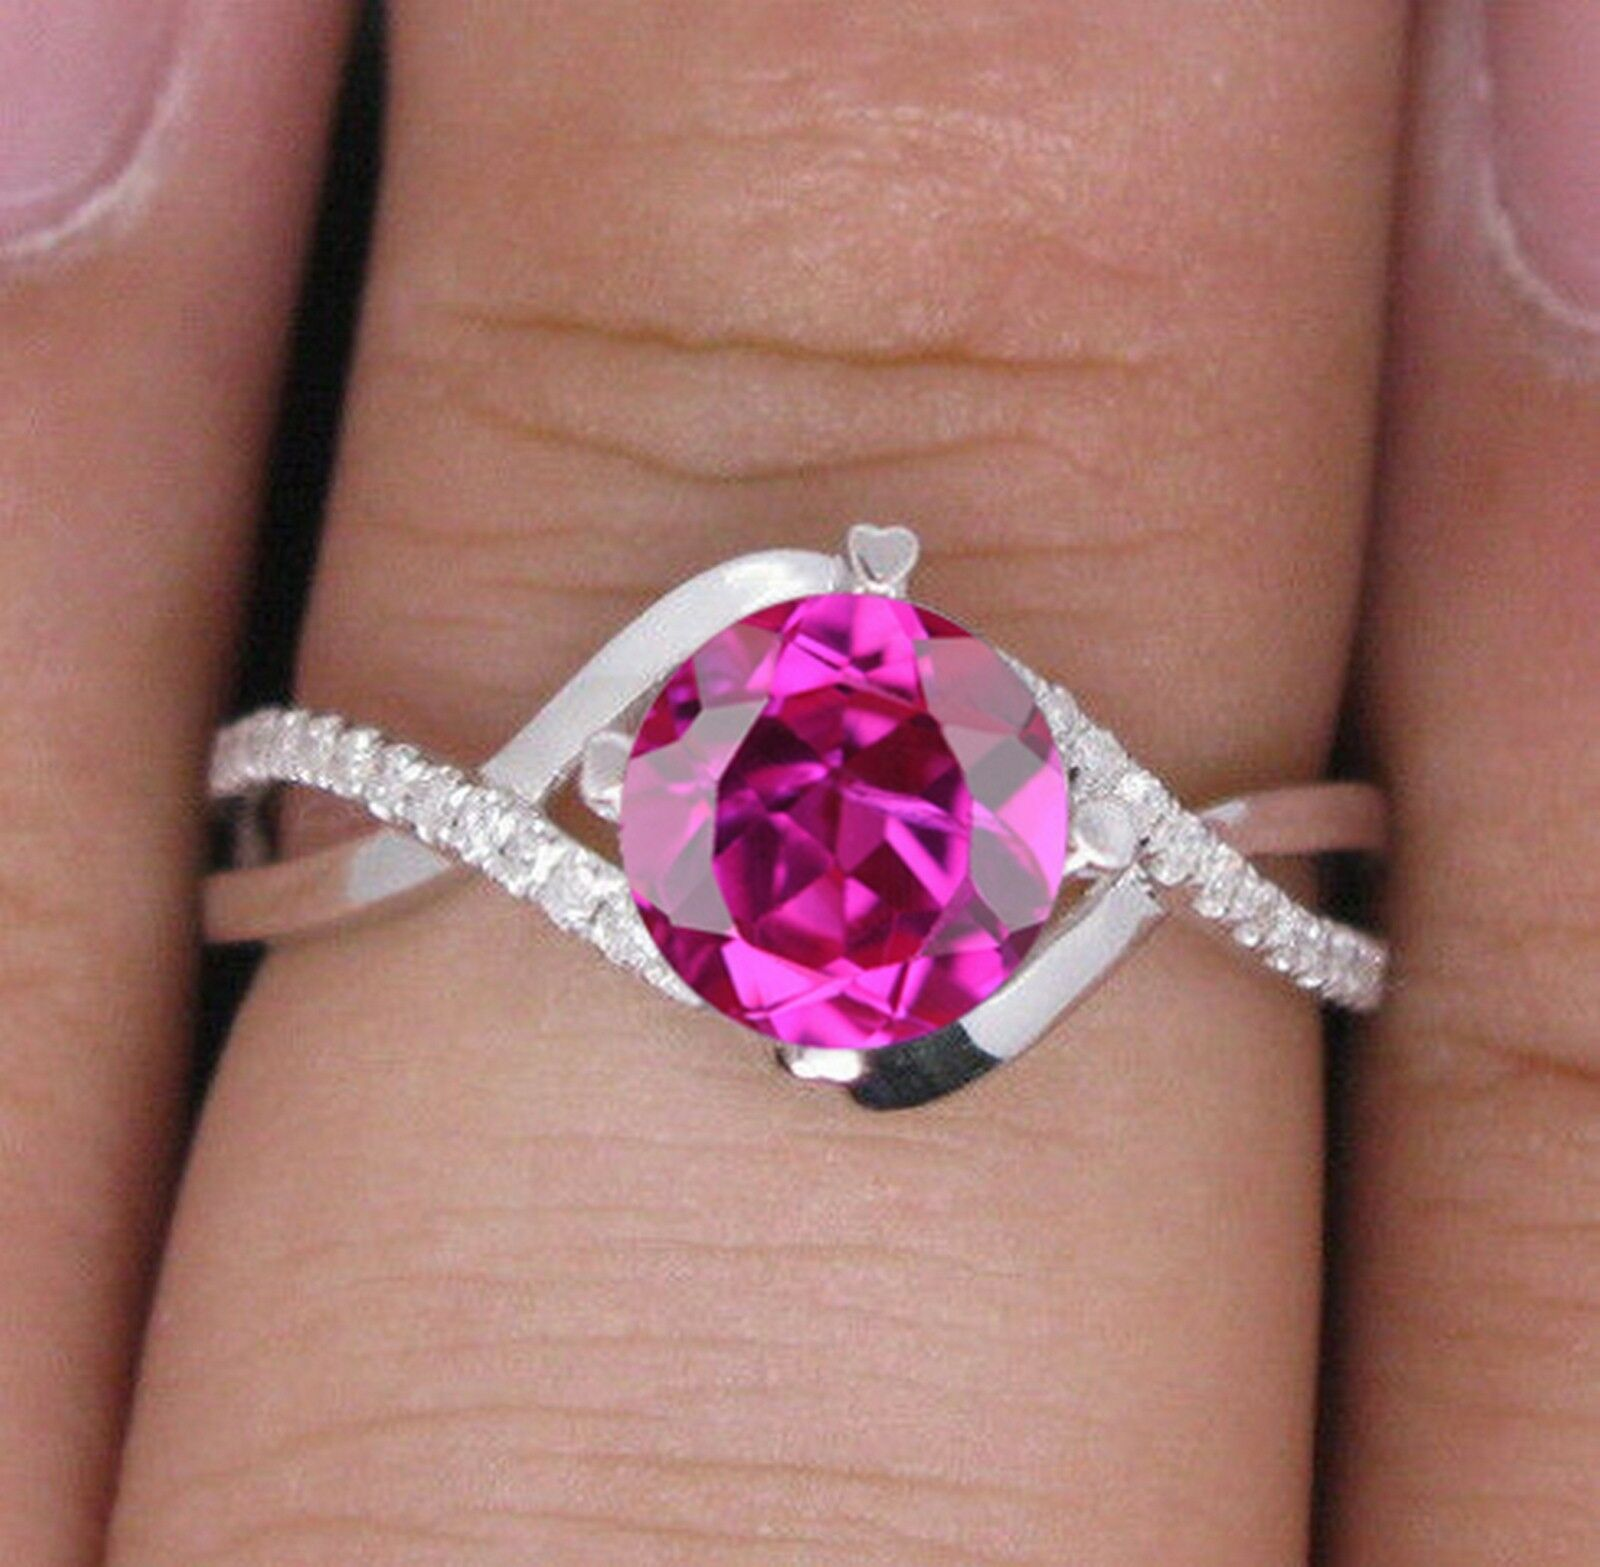 14KT White gold Natural Pink Tourmaline 1.55 Carat EGL Certified Diamond Ring